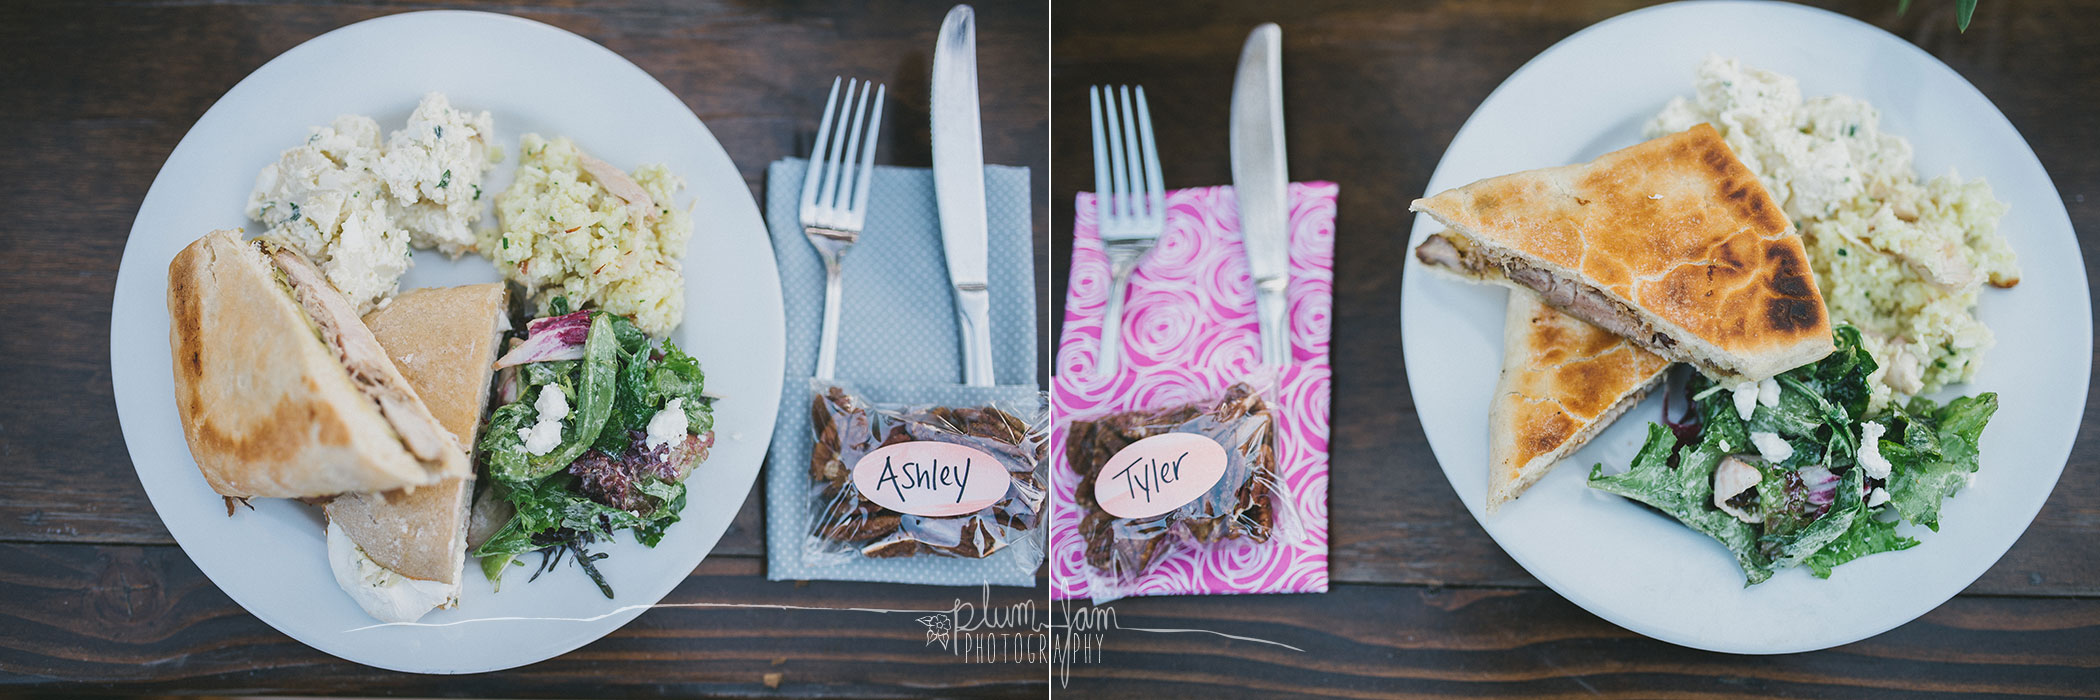 AshleyTylerWedding-Blog-021-PlumJamPhotography